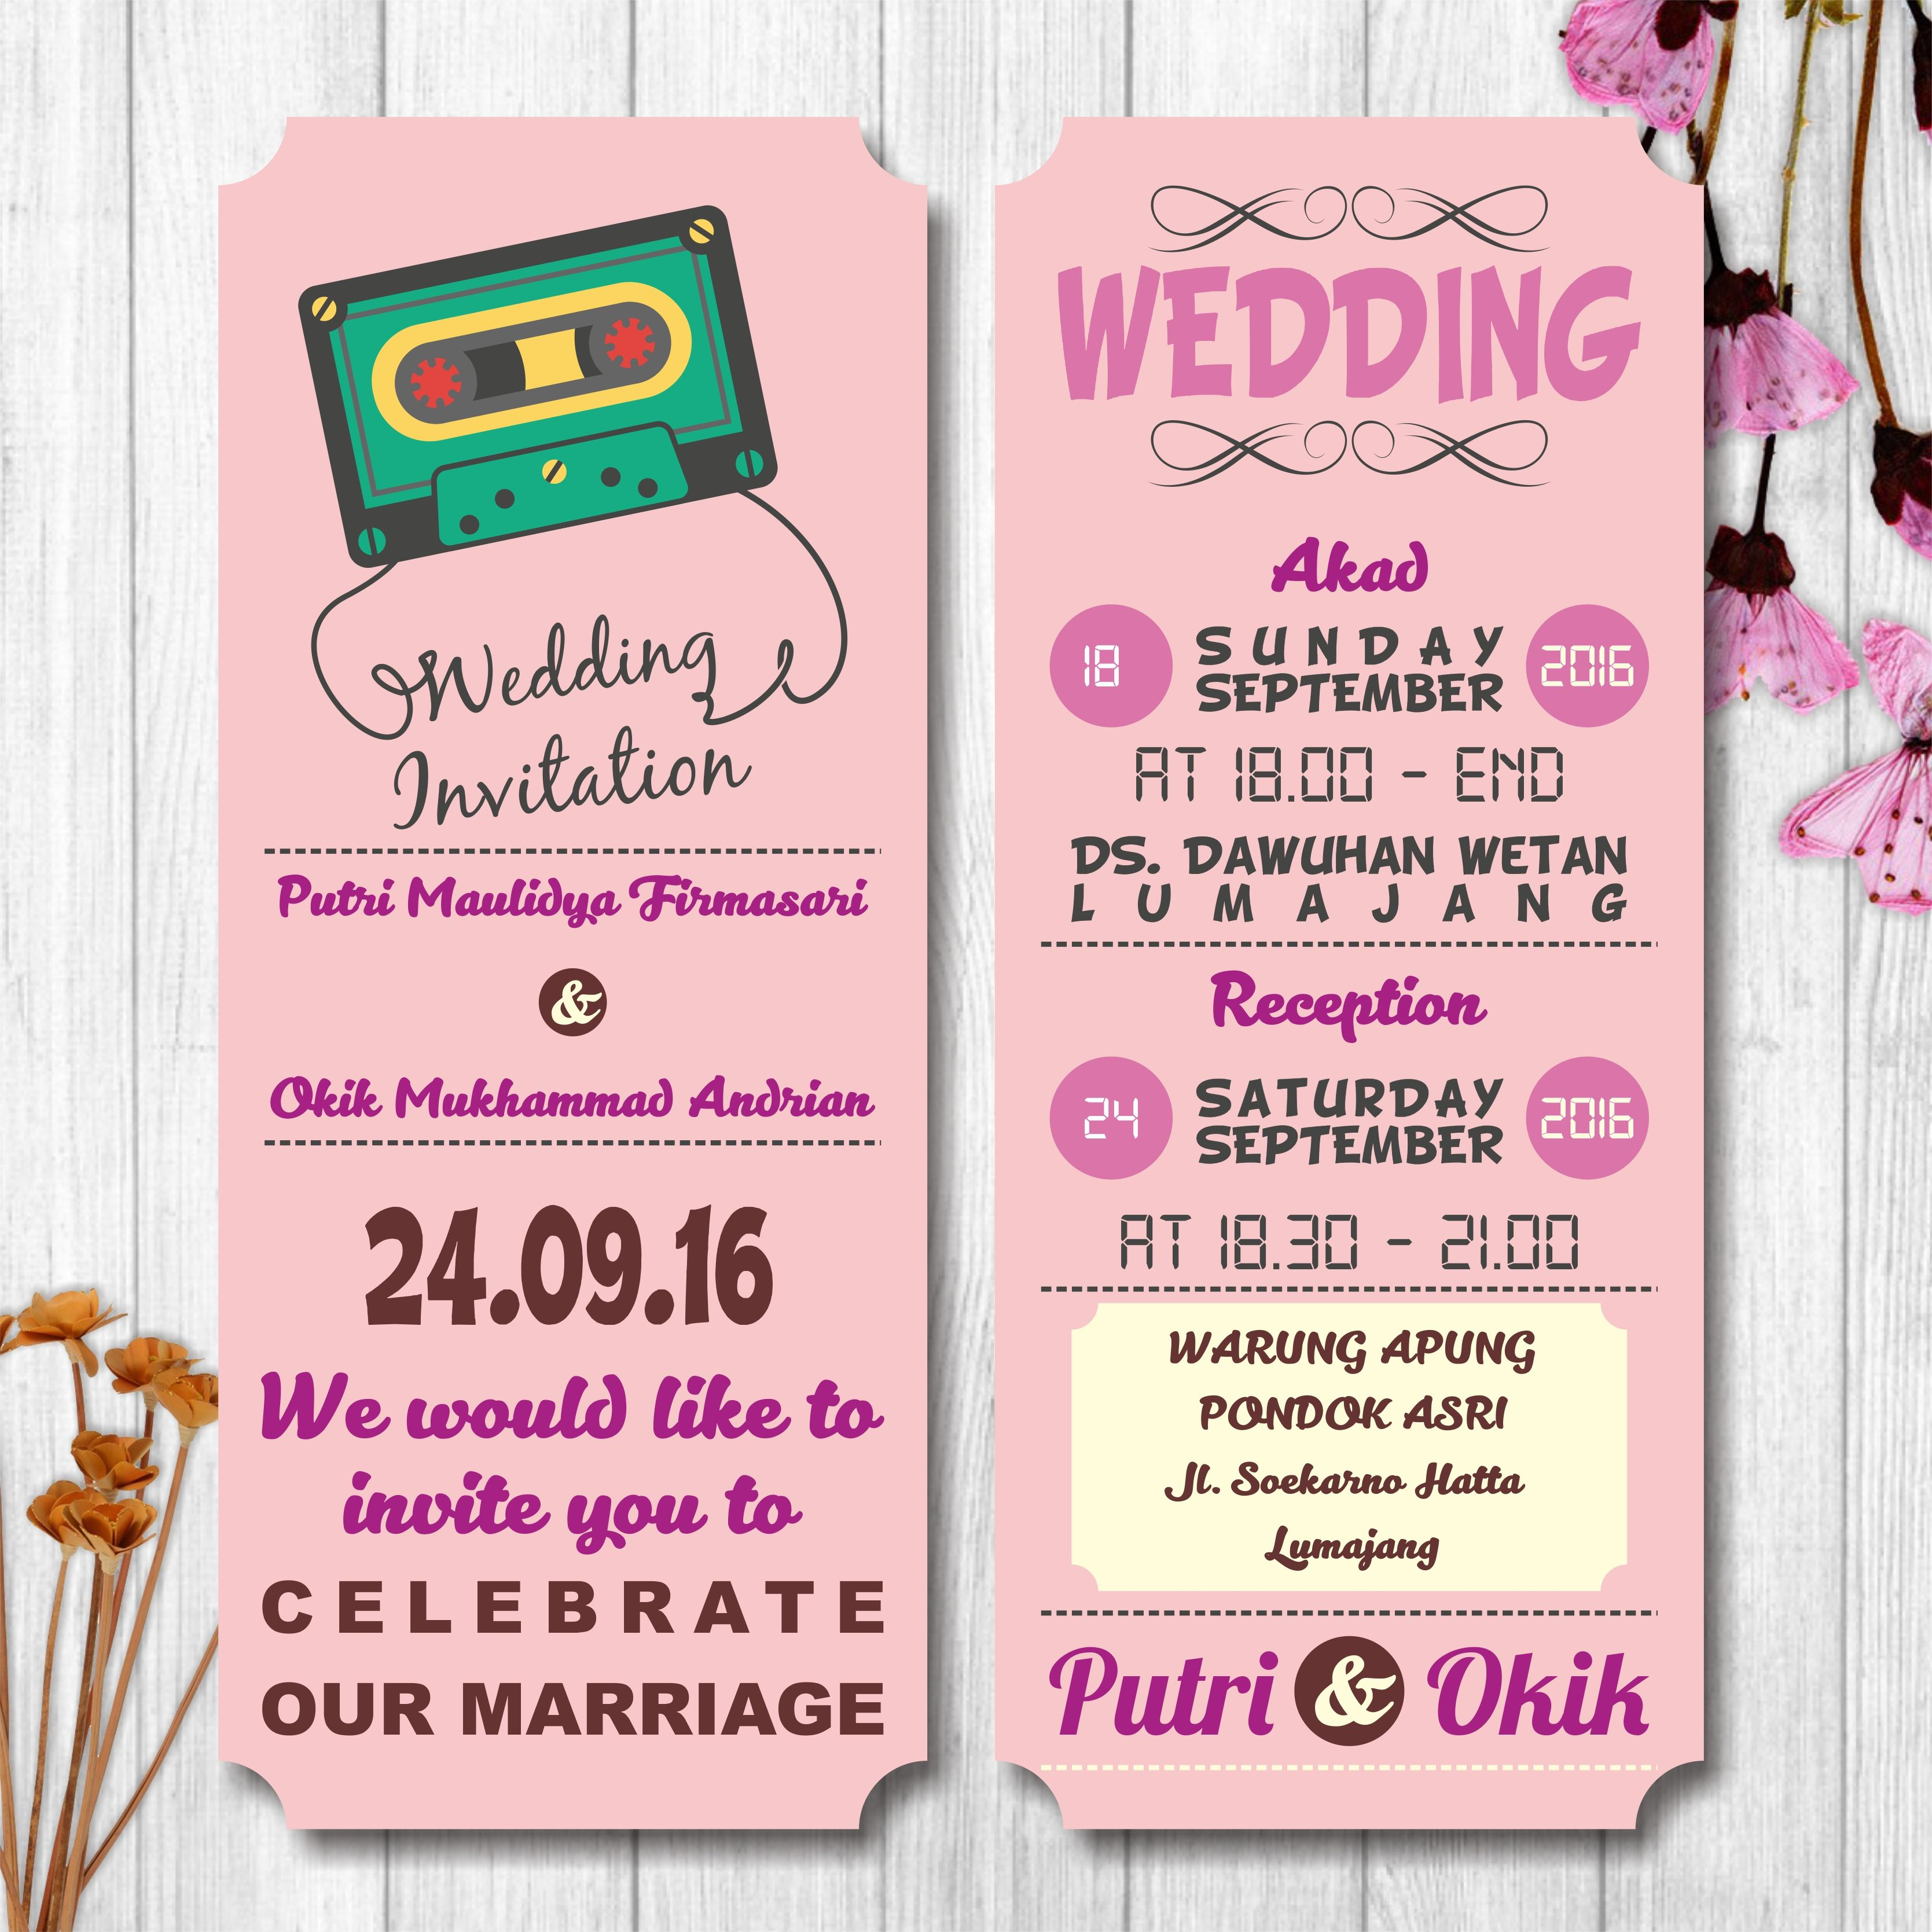 Online Wedding Invitation E Invitation Wedding Inviation Wedding